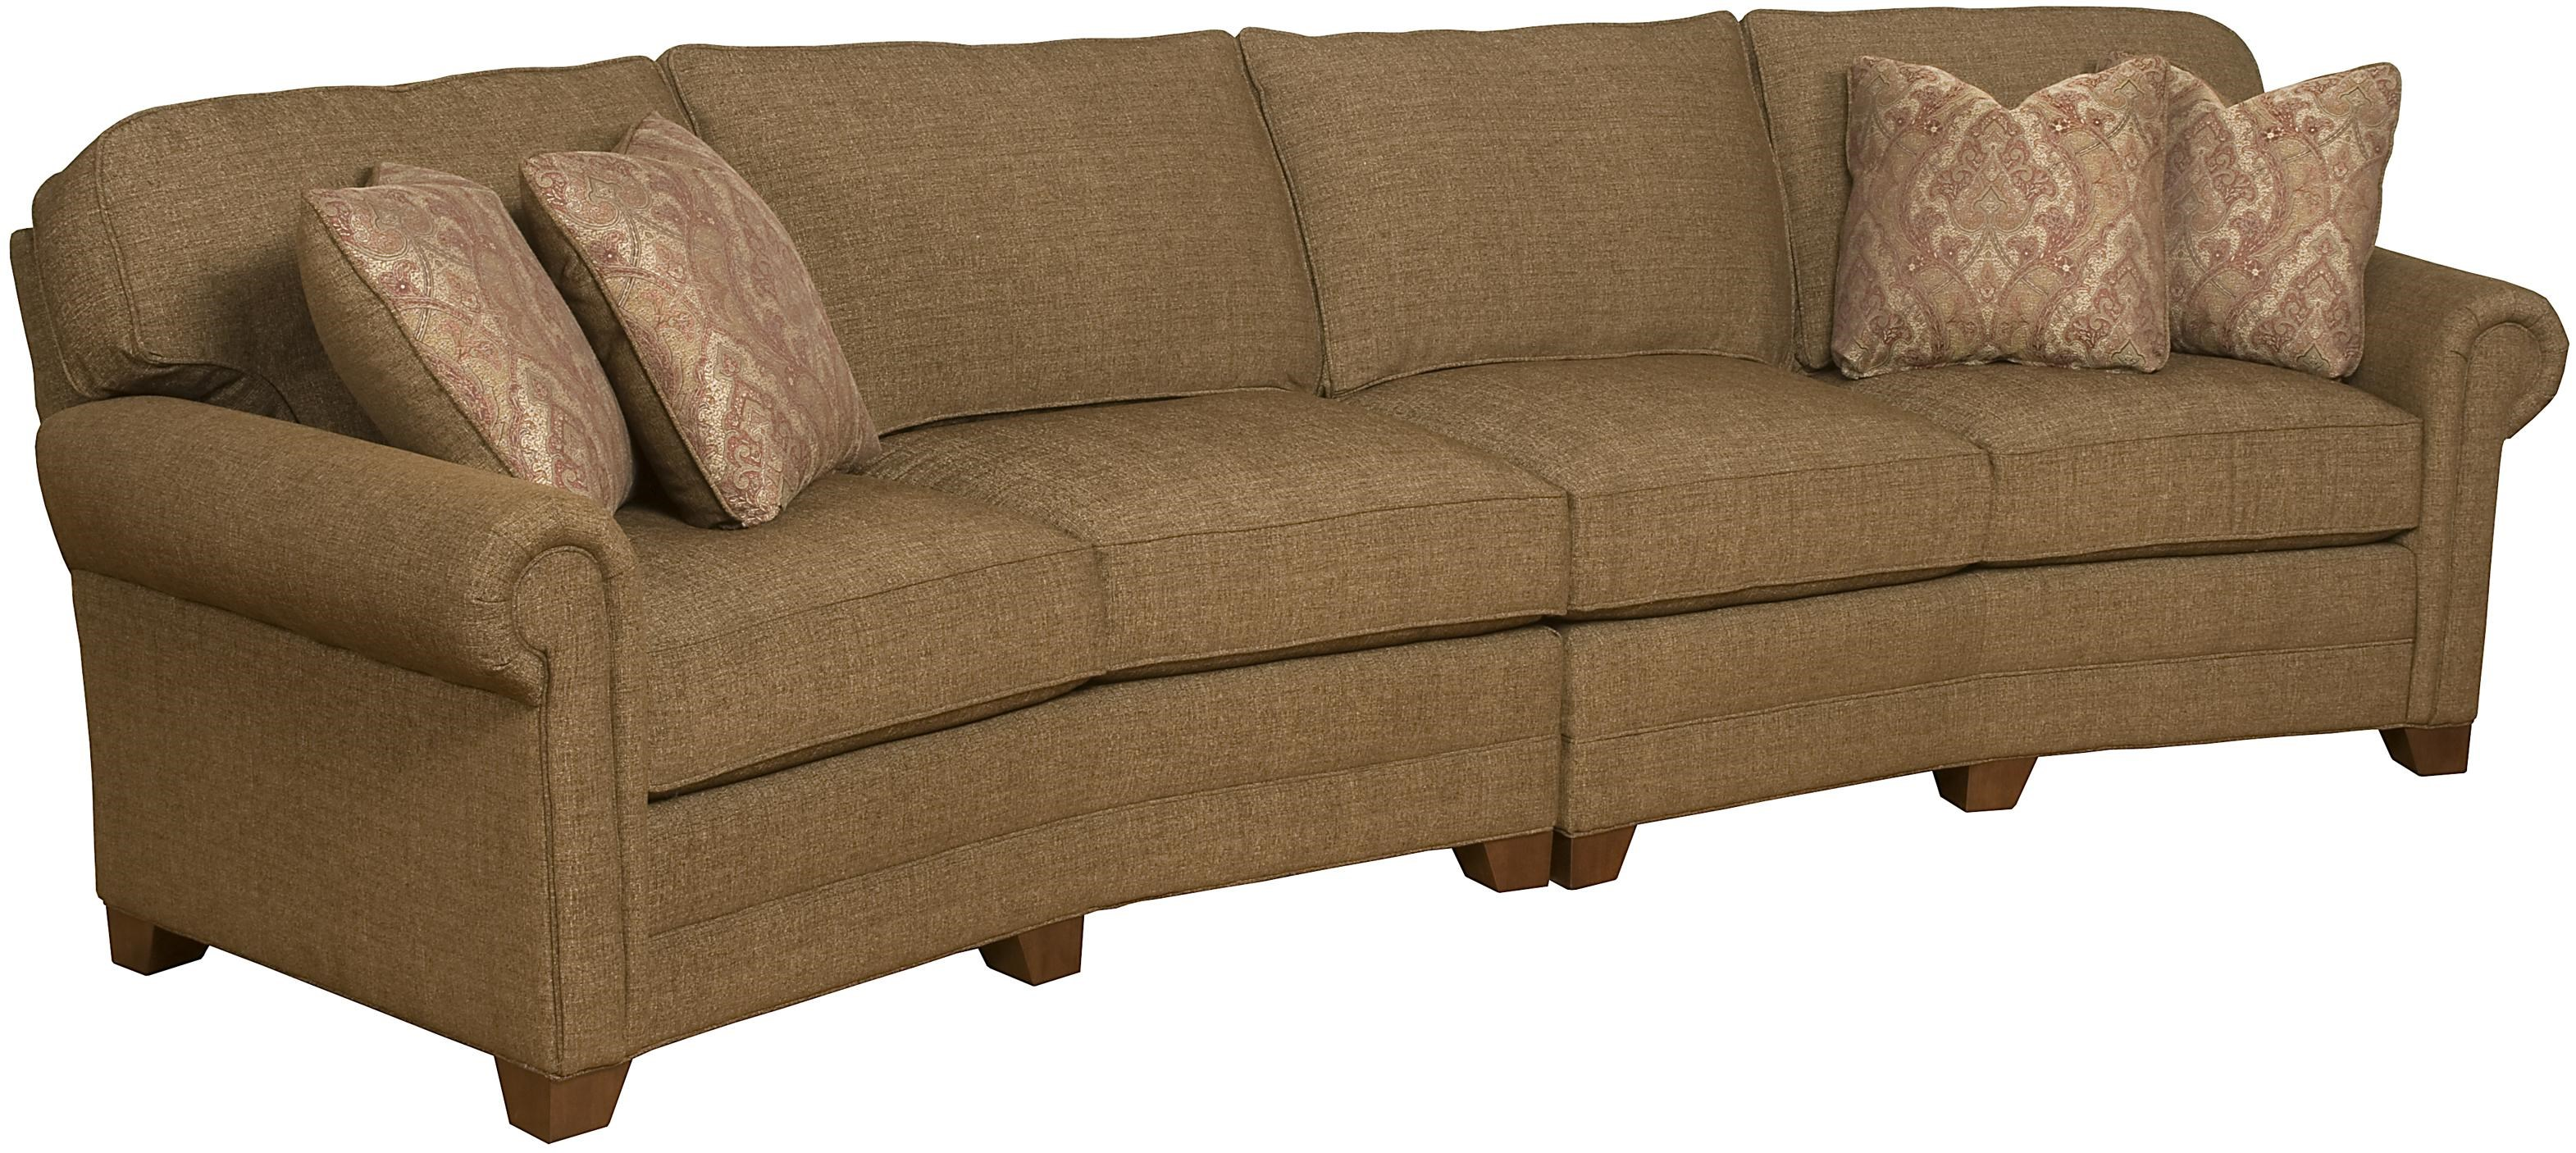 King Hickory Juliana Sofa King Hickory Chairs Hickory Furniture